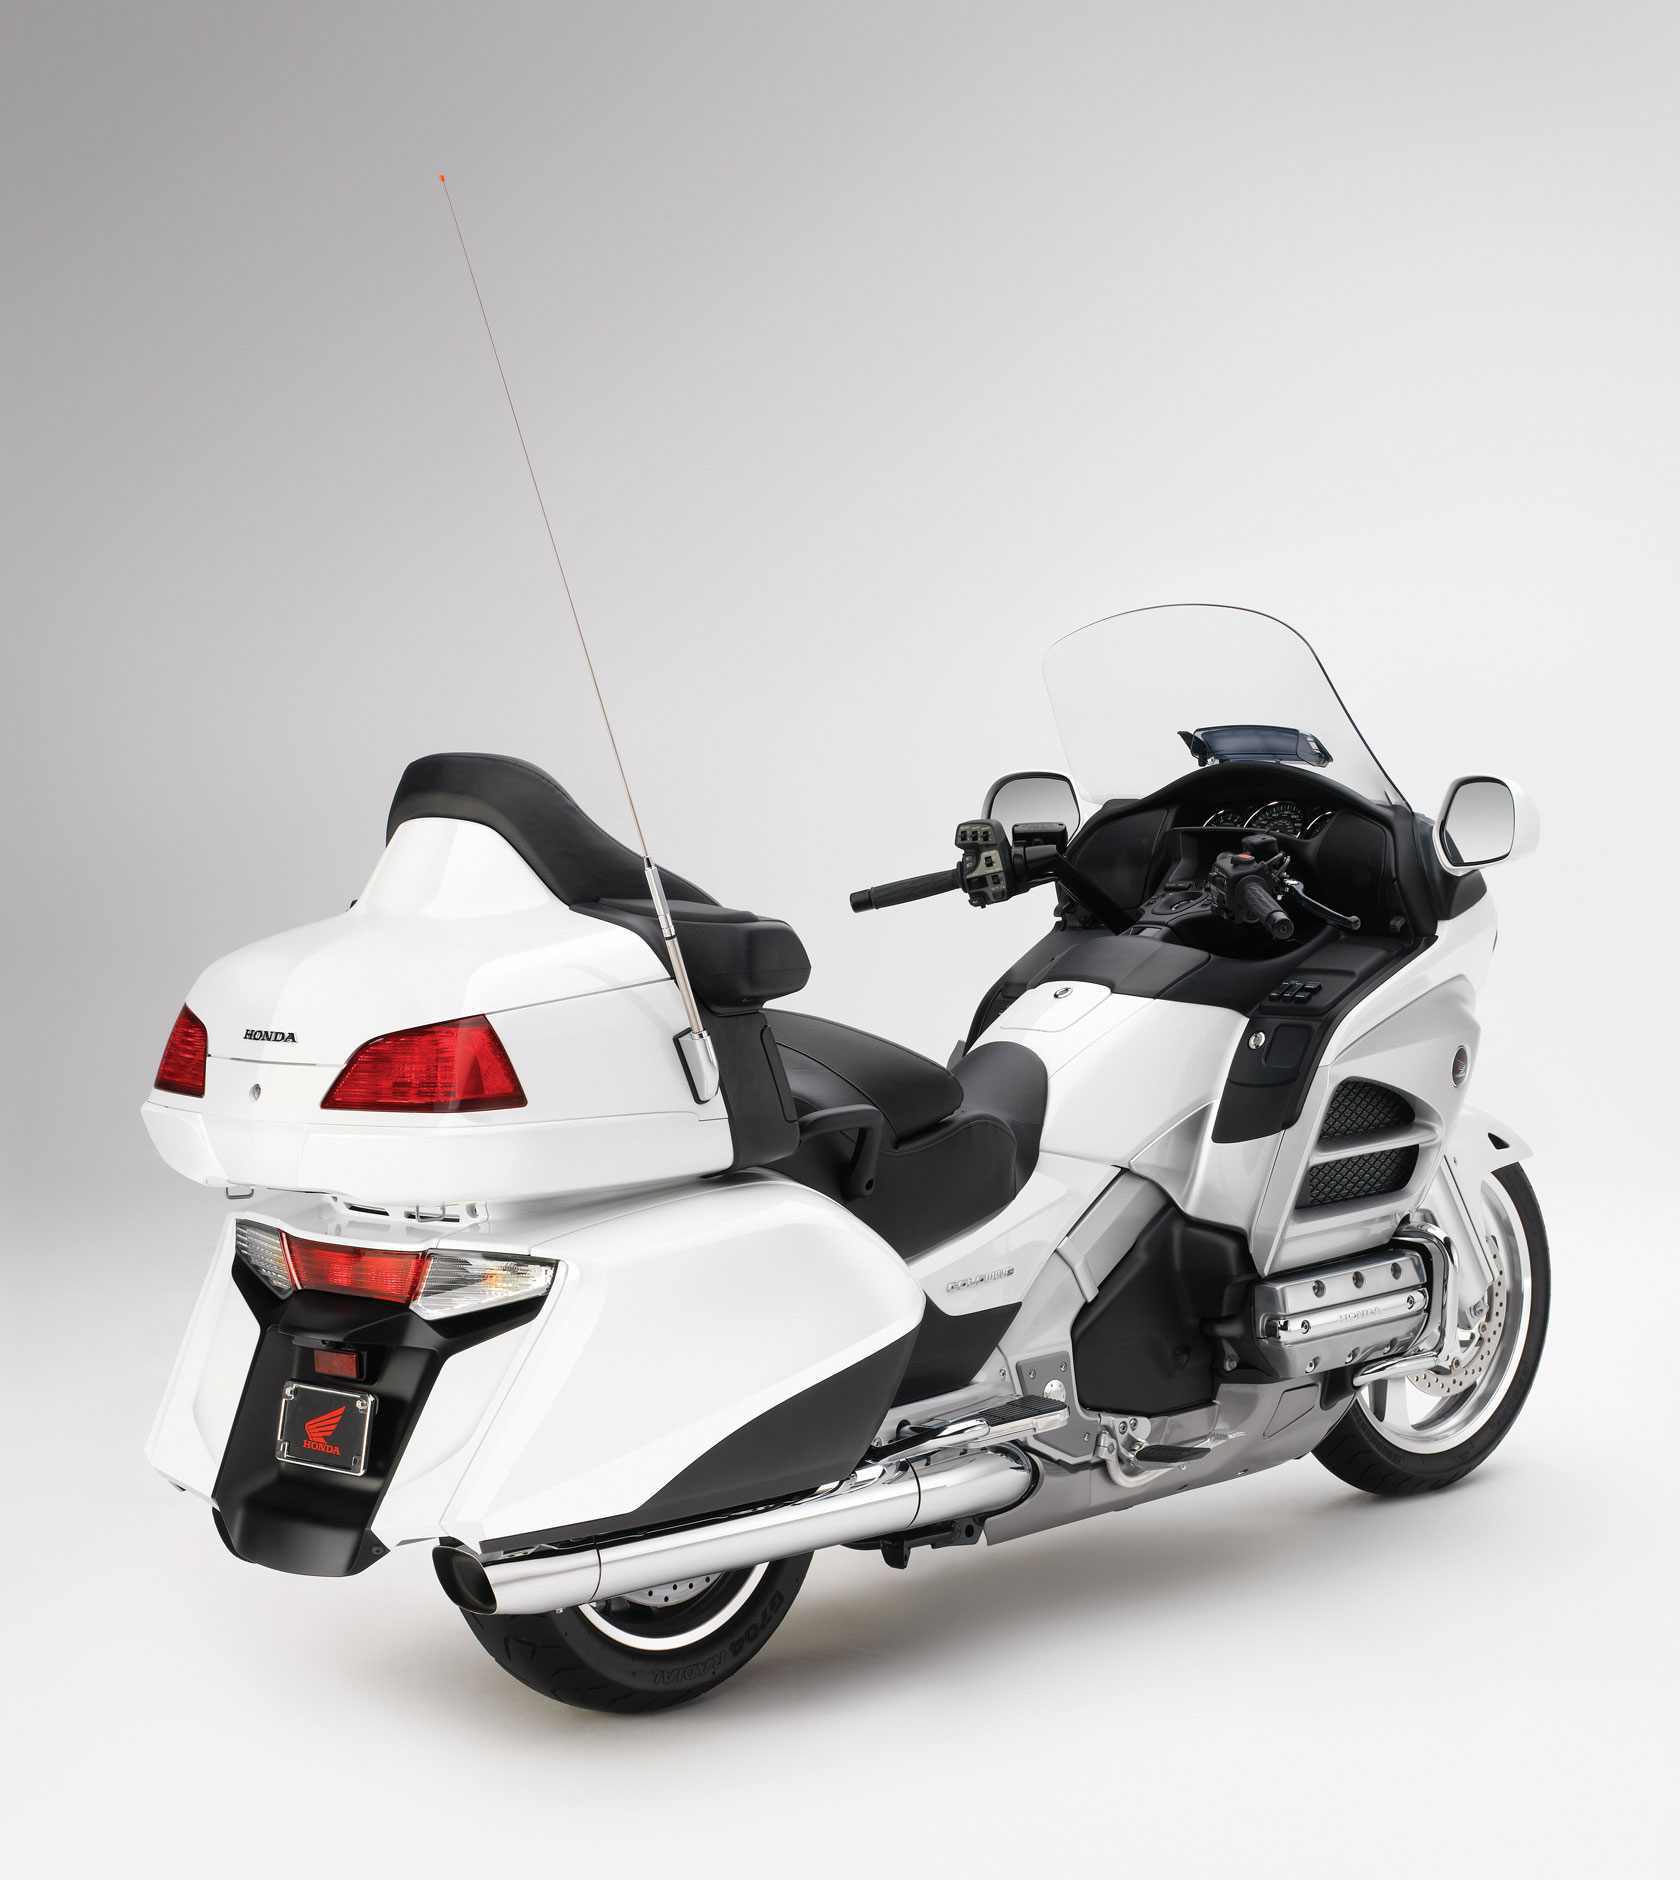 Honda GL1800 Dold Wing Audio Comfort 2015 images #83292